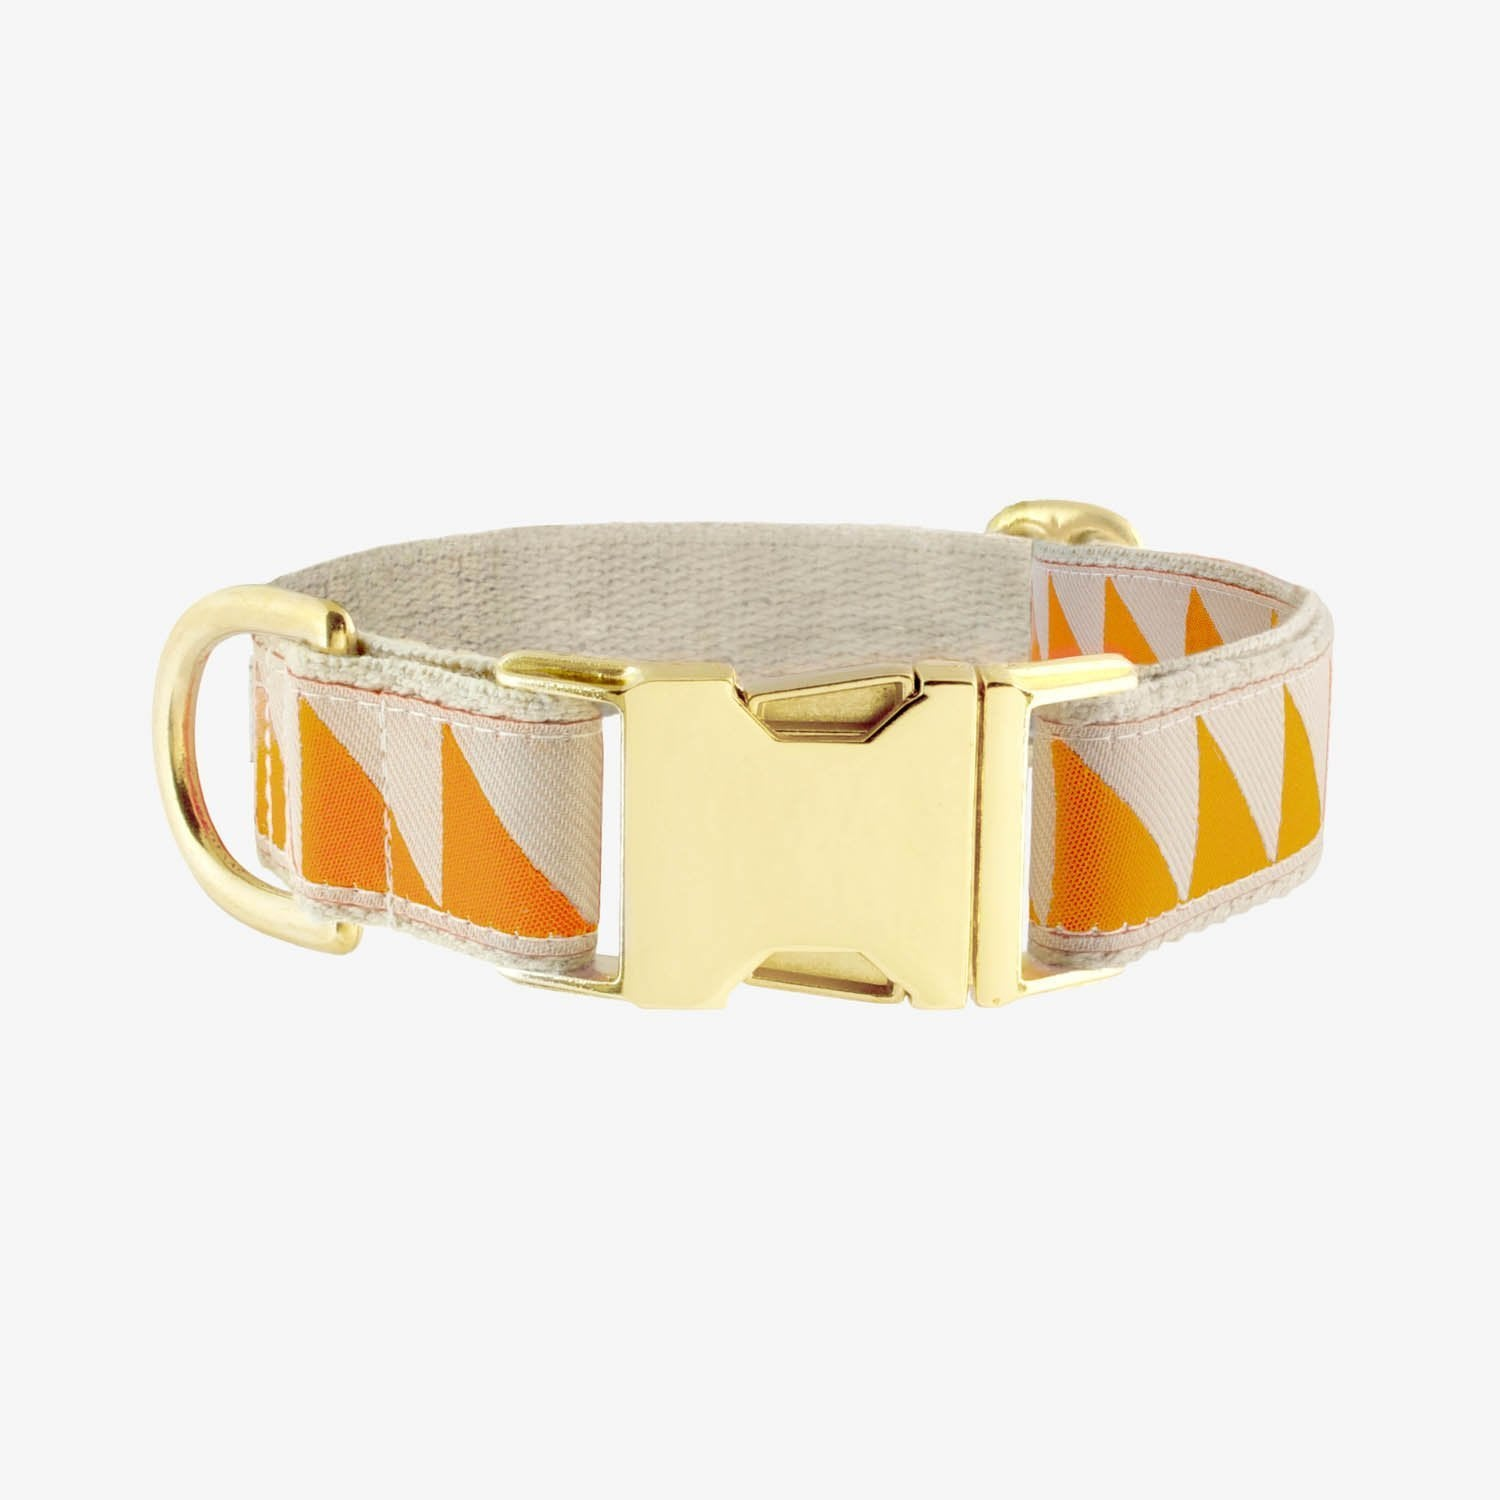 See Scout Sleep Nice Grill Brass Collar - Tangerine and Cream